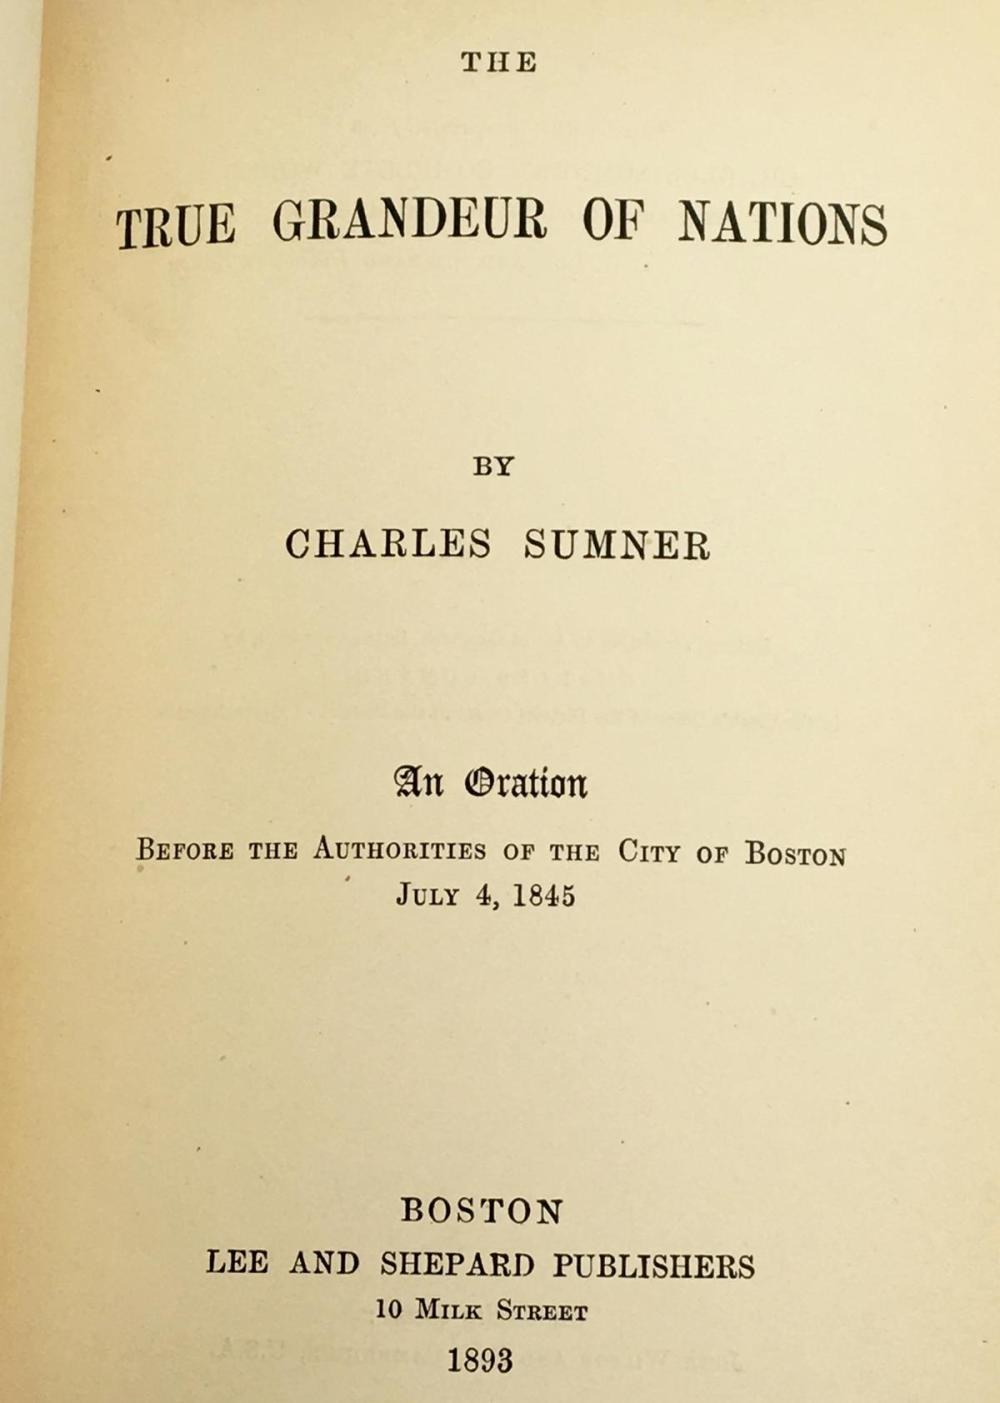 1893 The True Graneur of Nations: An Oration Before The Authorities of The City of Boston July 4, 1845 by Charles Sumner